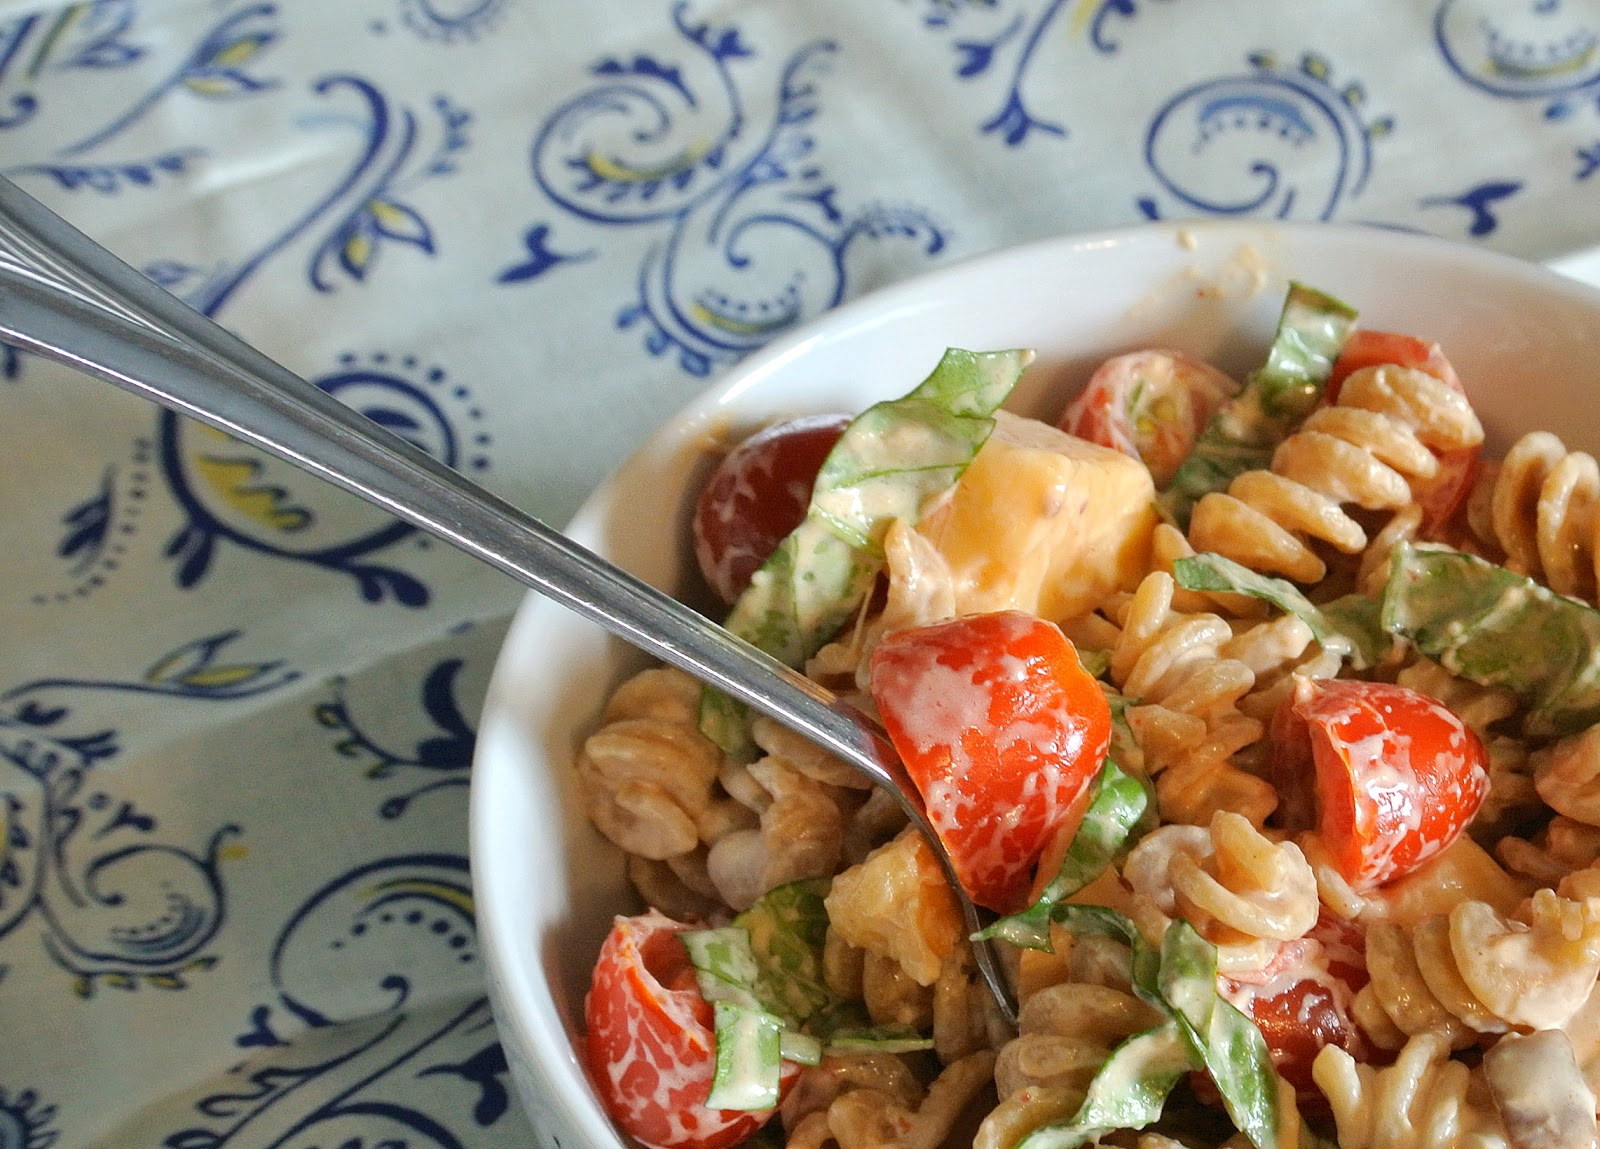 ... : Spicy Chicken Pasta Salad with Smoked Gouda, Tomatoes, and Basil